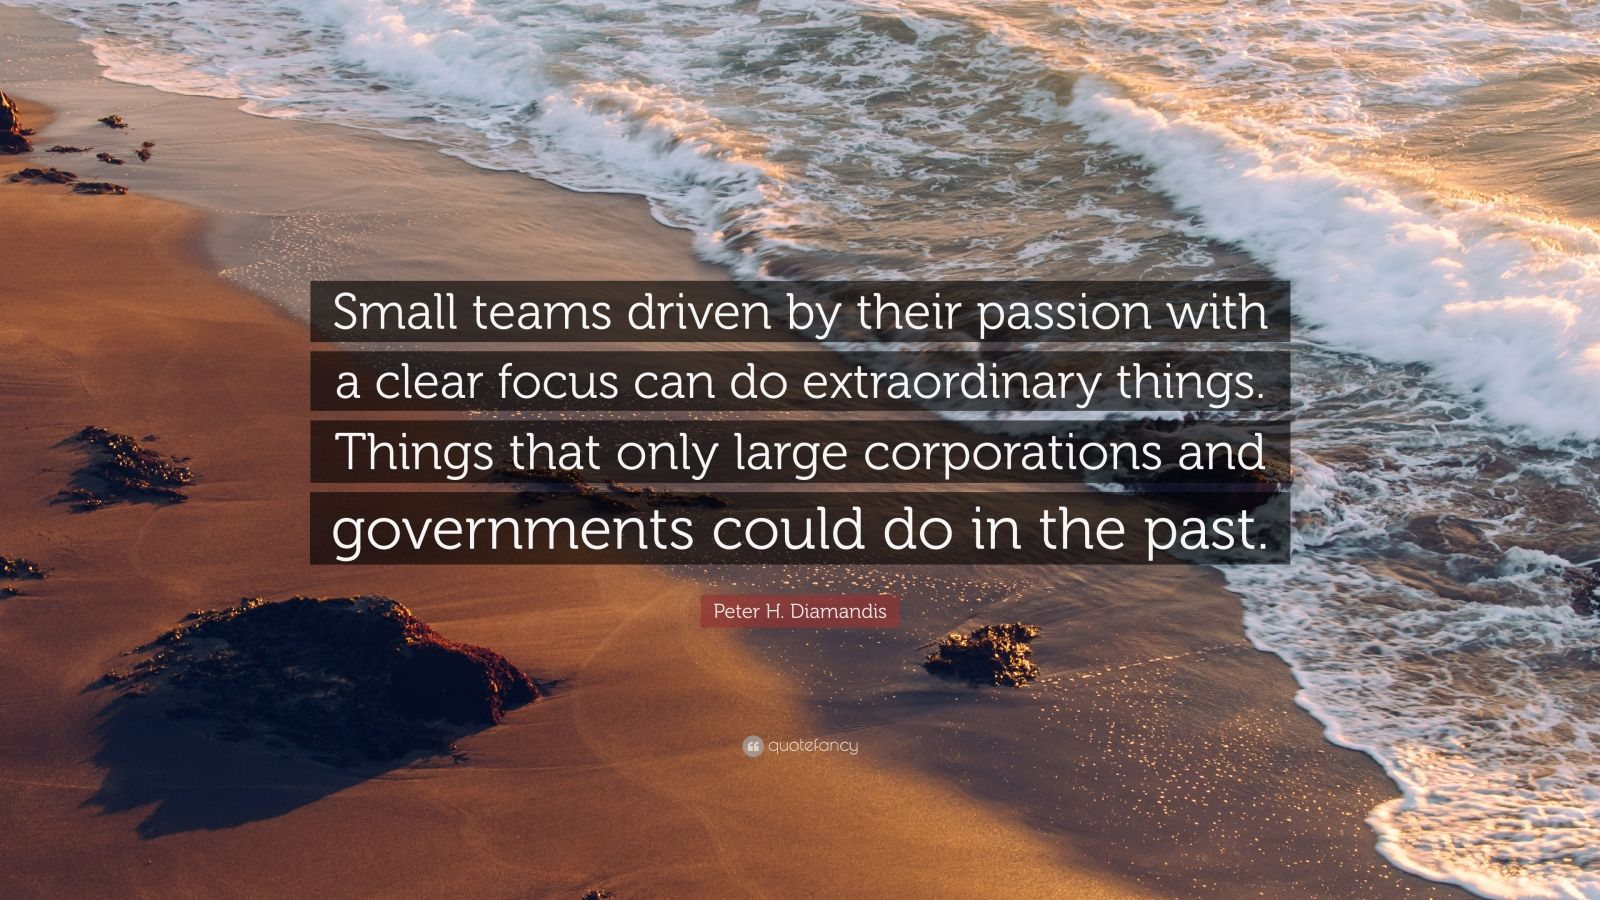 """Peter H. Diamandis Quote: """"Small teams driven by their passion with a clear focus can do extraordinary things. Things that only large corporations and governments could do in the past."""""""